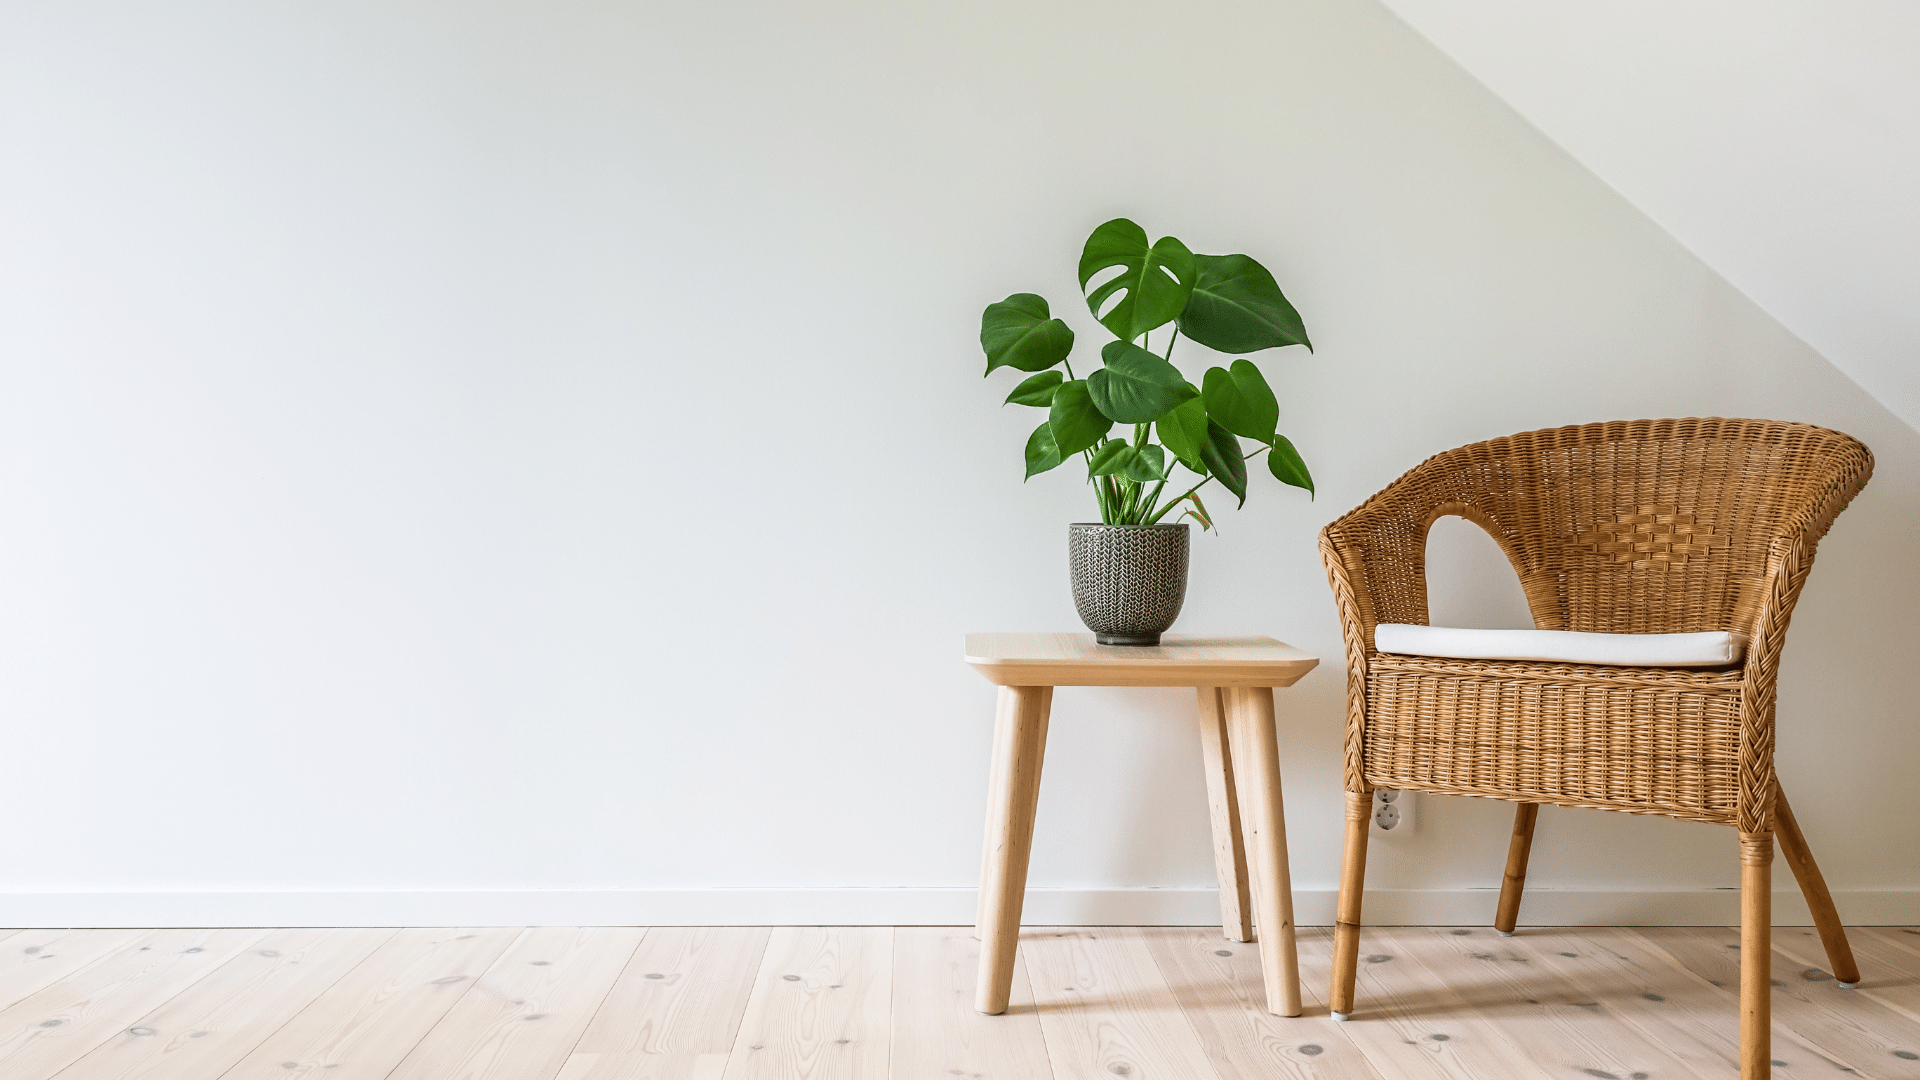 Home Design Trends to Look Out For in 2021